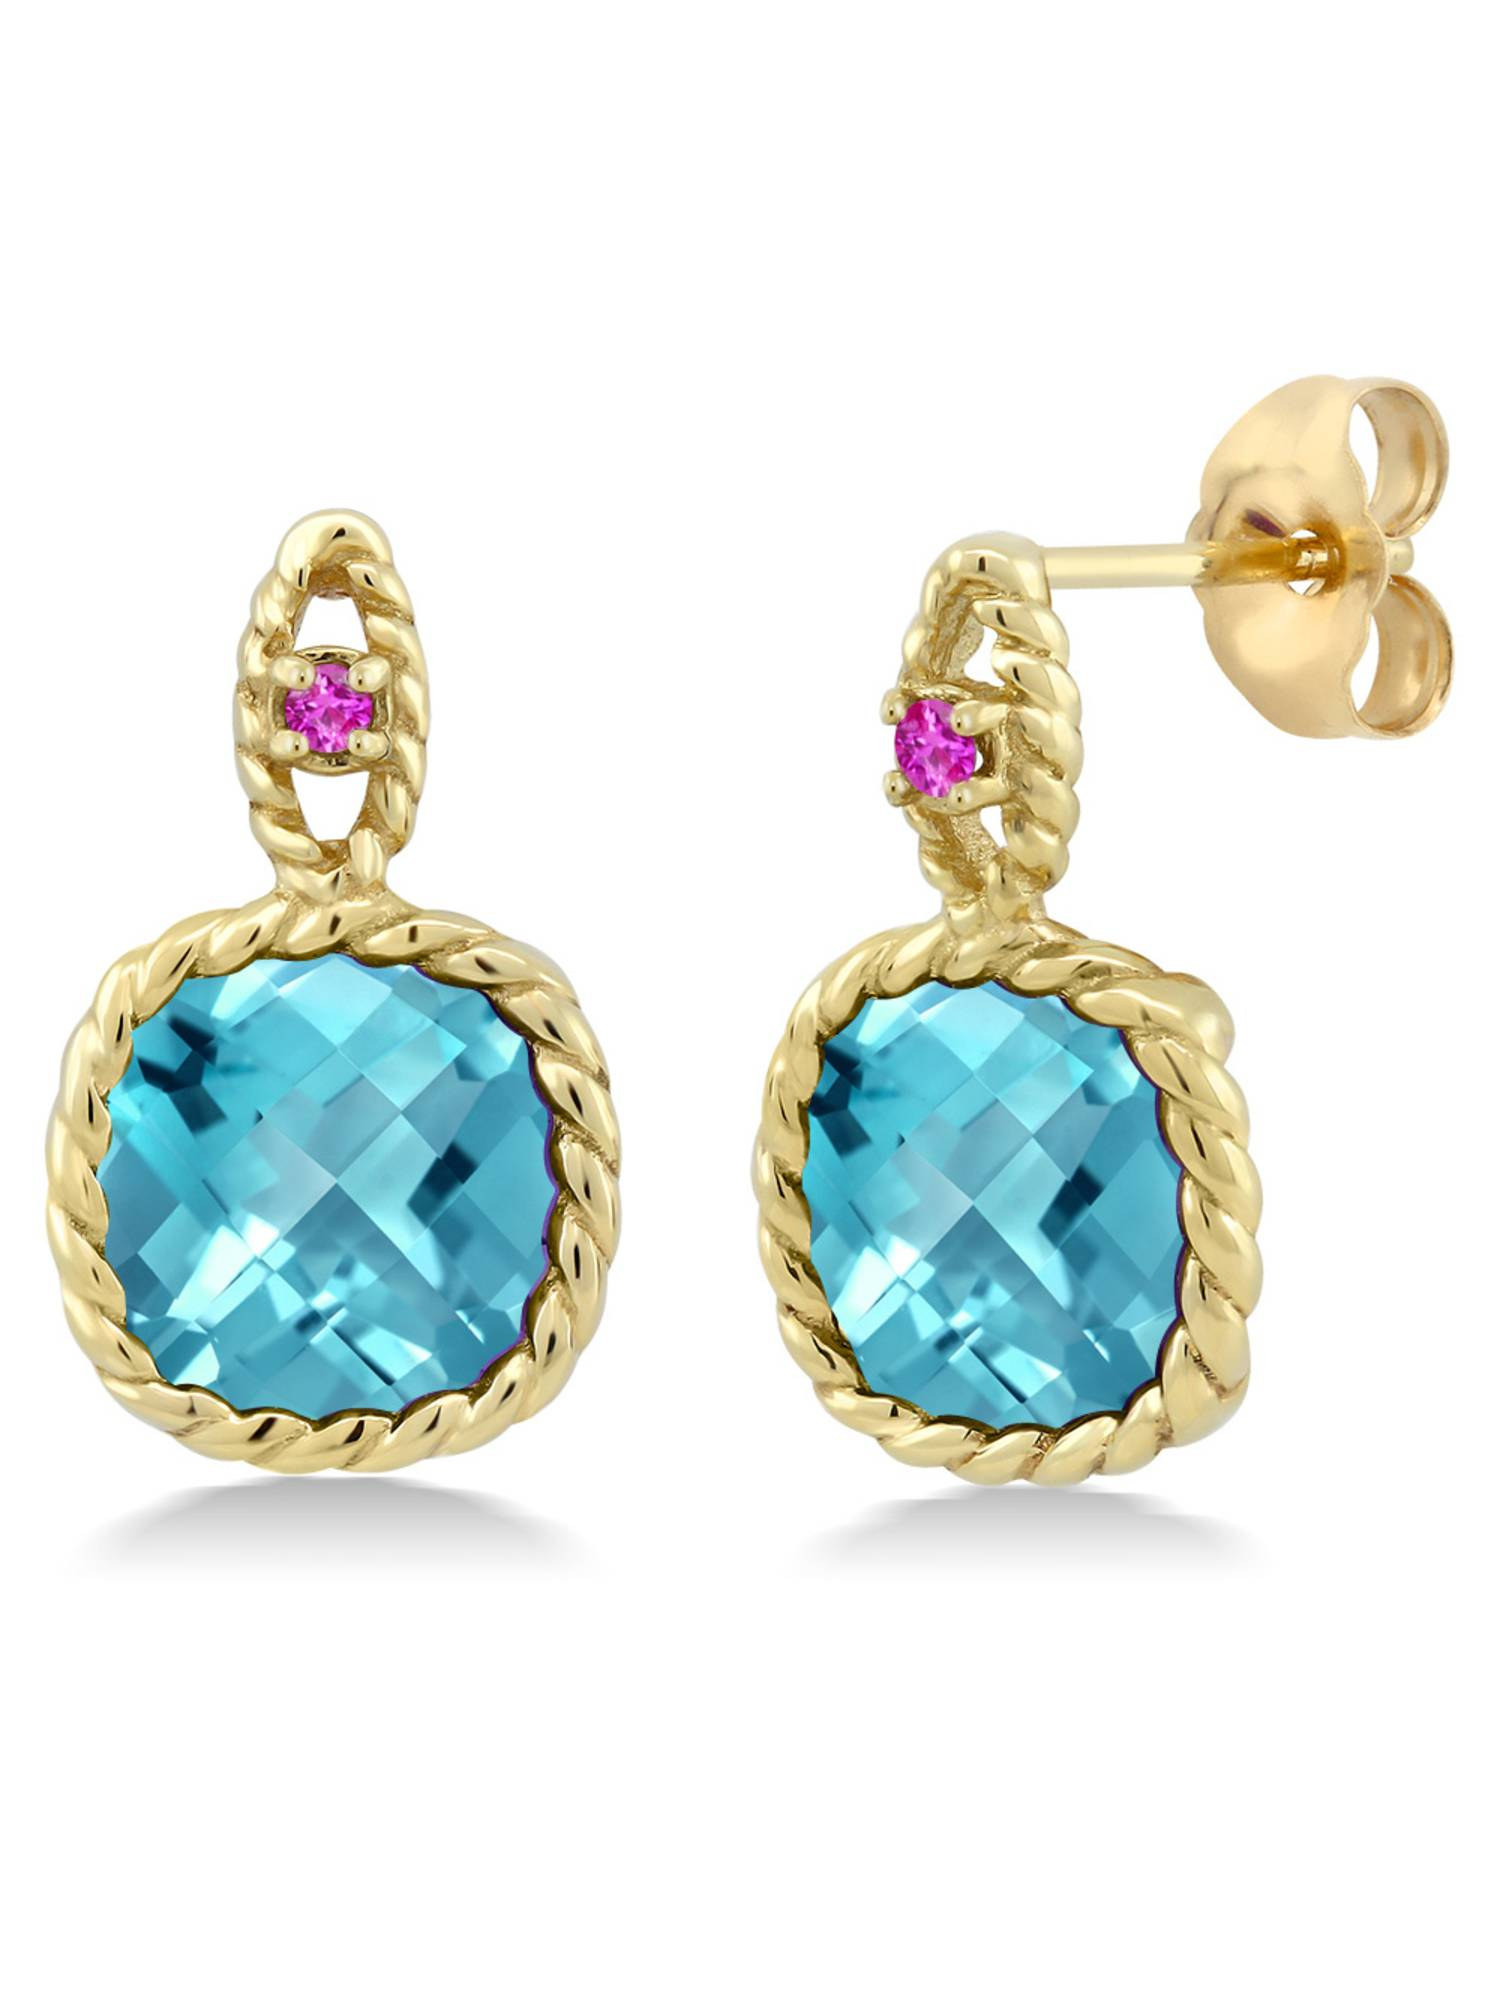 5.54 Ct Cushion Checkerboard Swiss Blue Topaz Pink Sapphire 10K Yellow Gold Earrings by